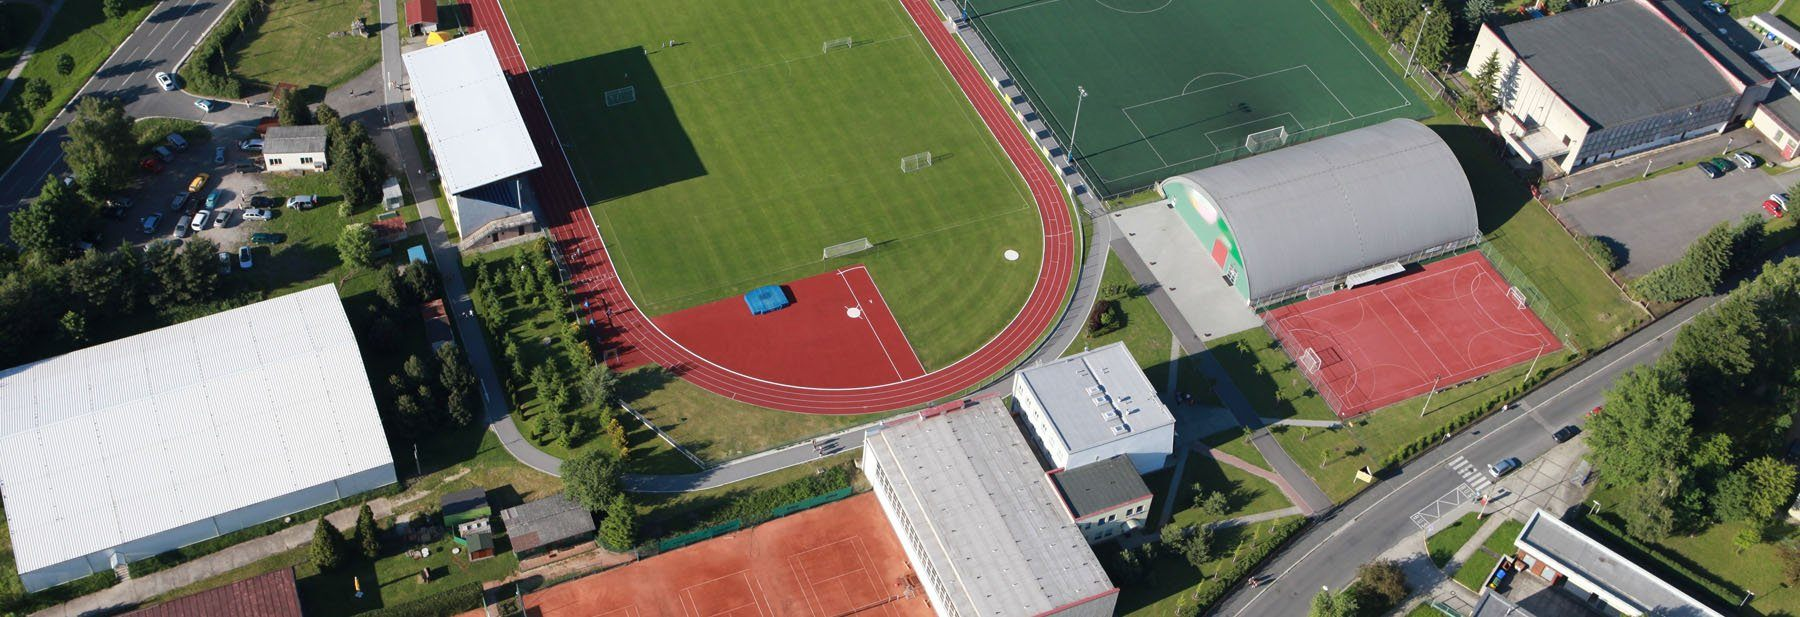 Track & Field Management Software for Clubs